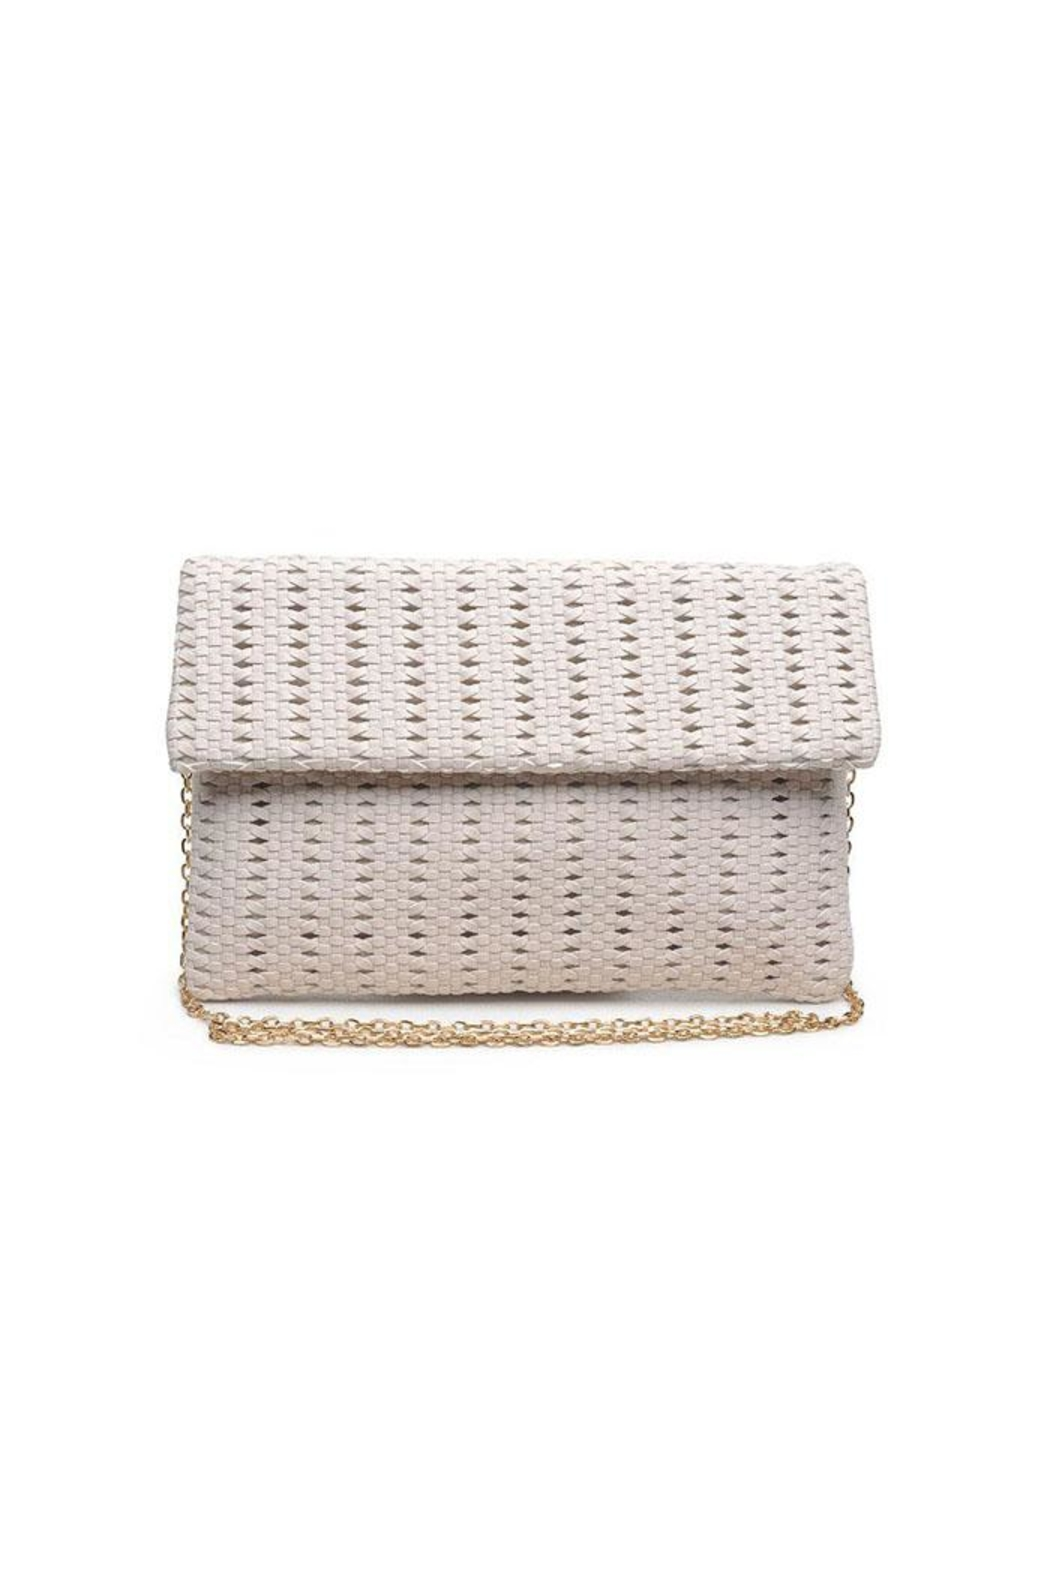 Urban Expressions Addison Woven Clutch - Main Image